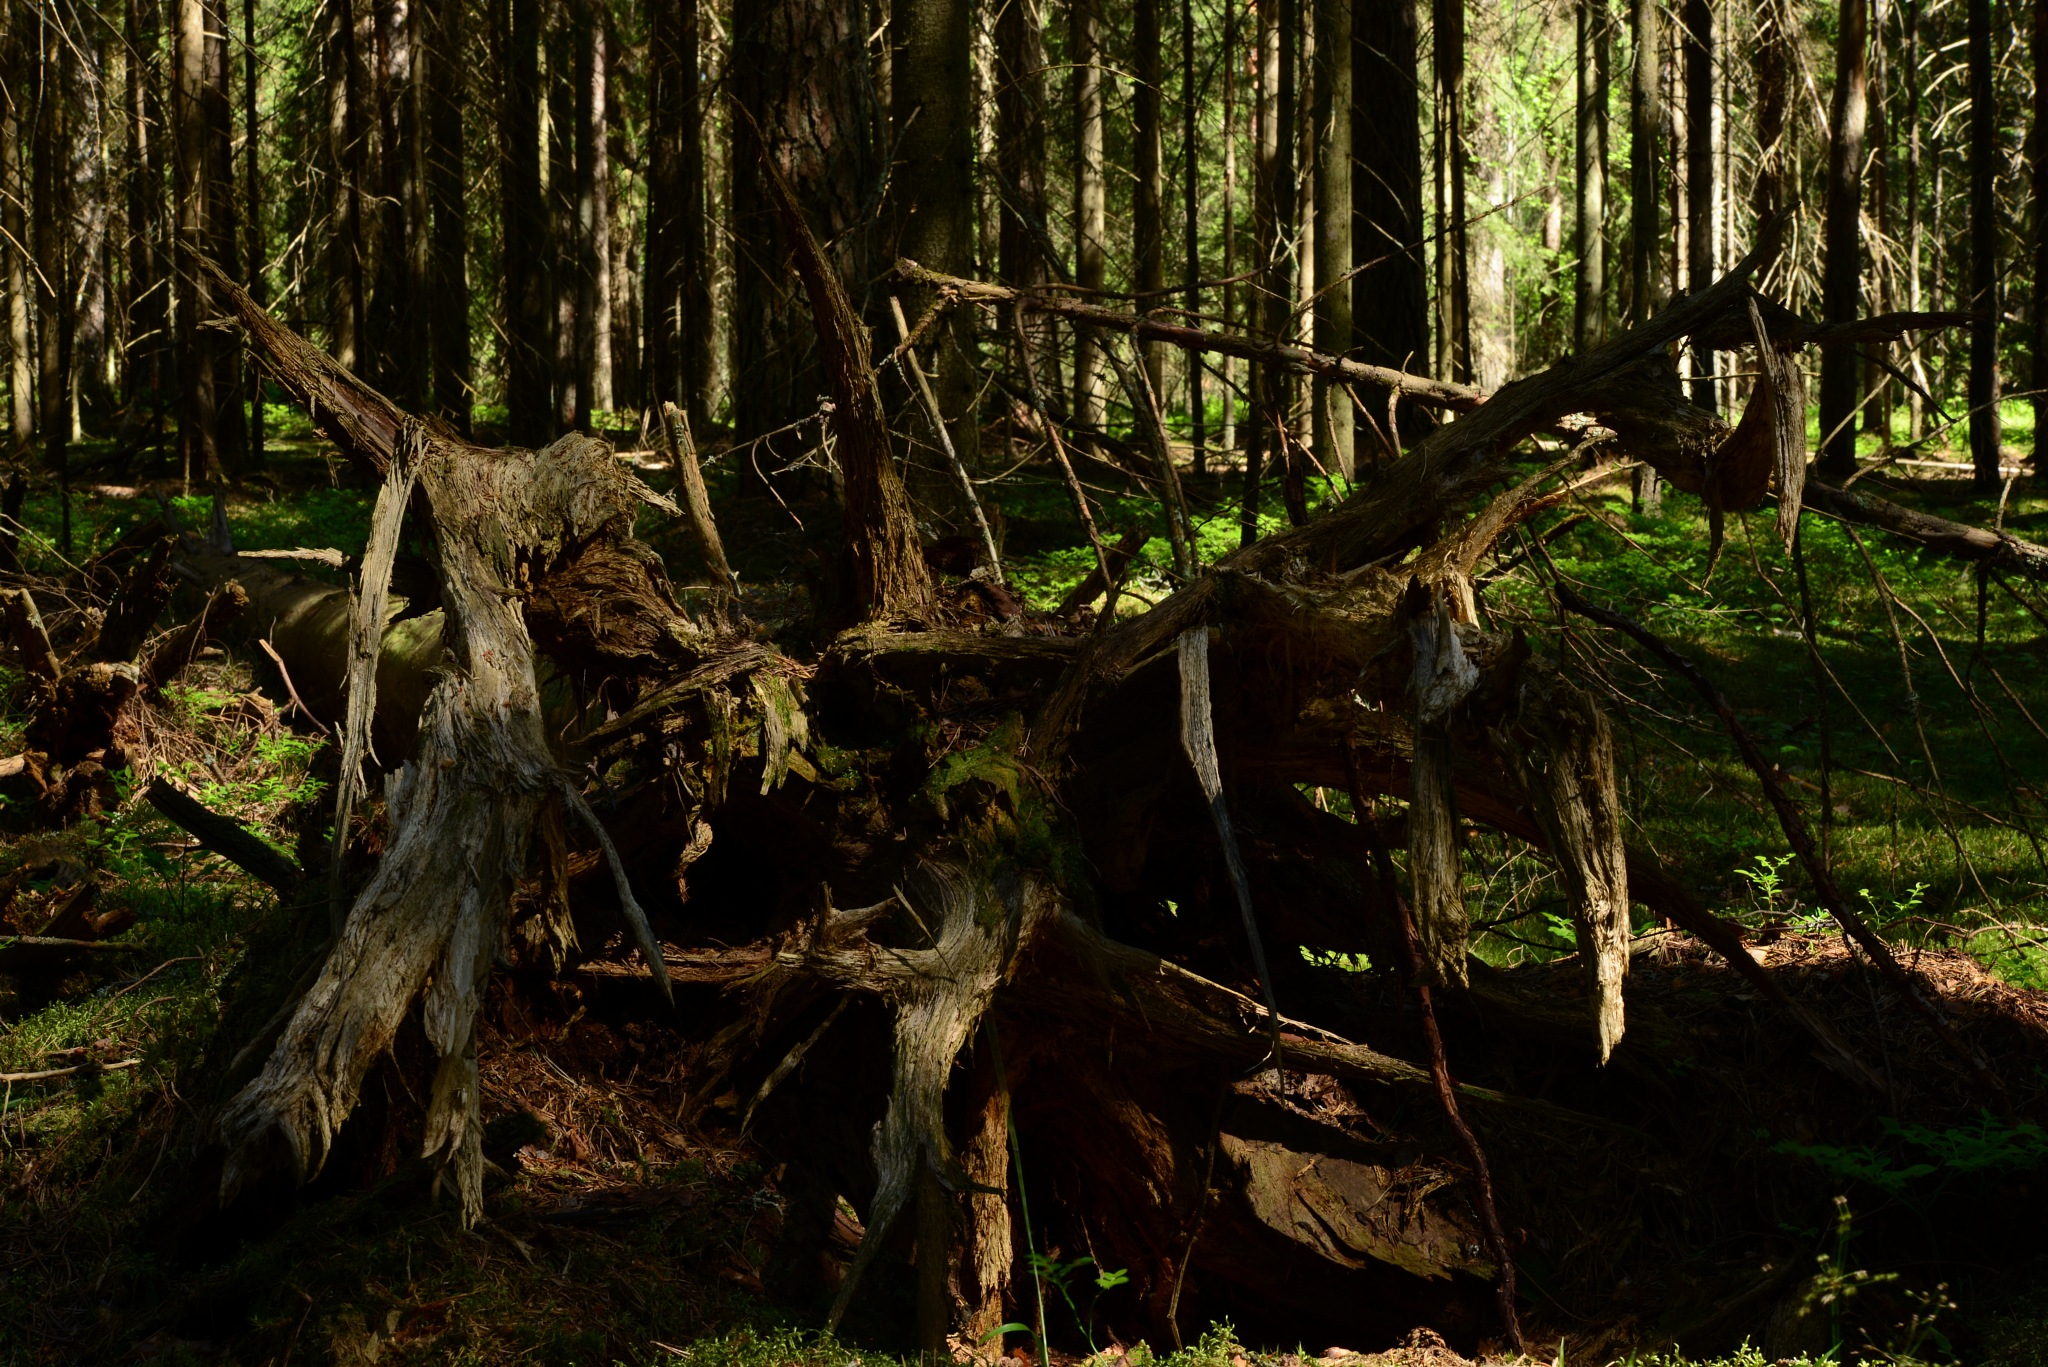 Dry the root of a fallen spruce fir forest in the sunlight spring morning by SergeiKudriavtcev